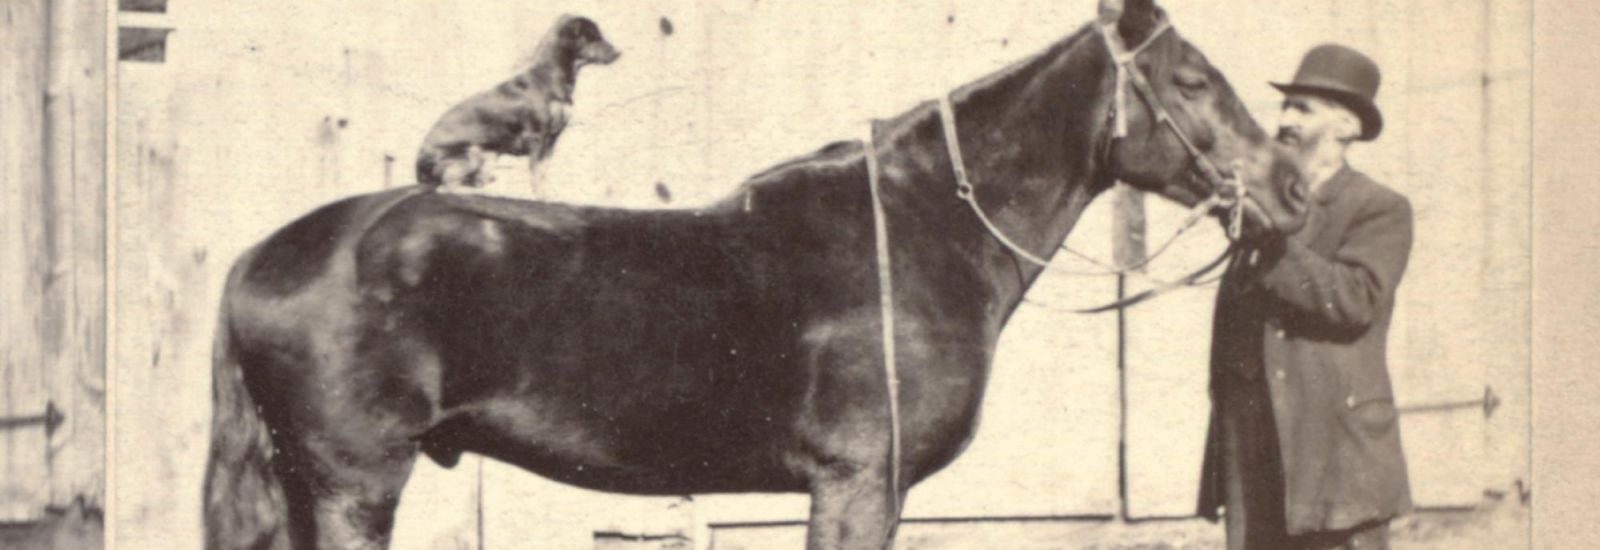 Sepia photograph of a horse with a dog sat on its back and a man in a bowler hat stood by its head.